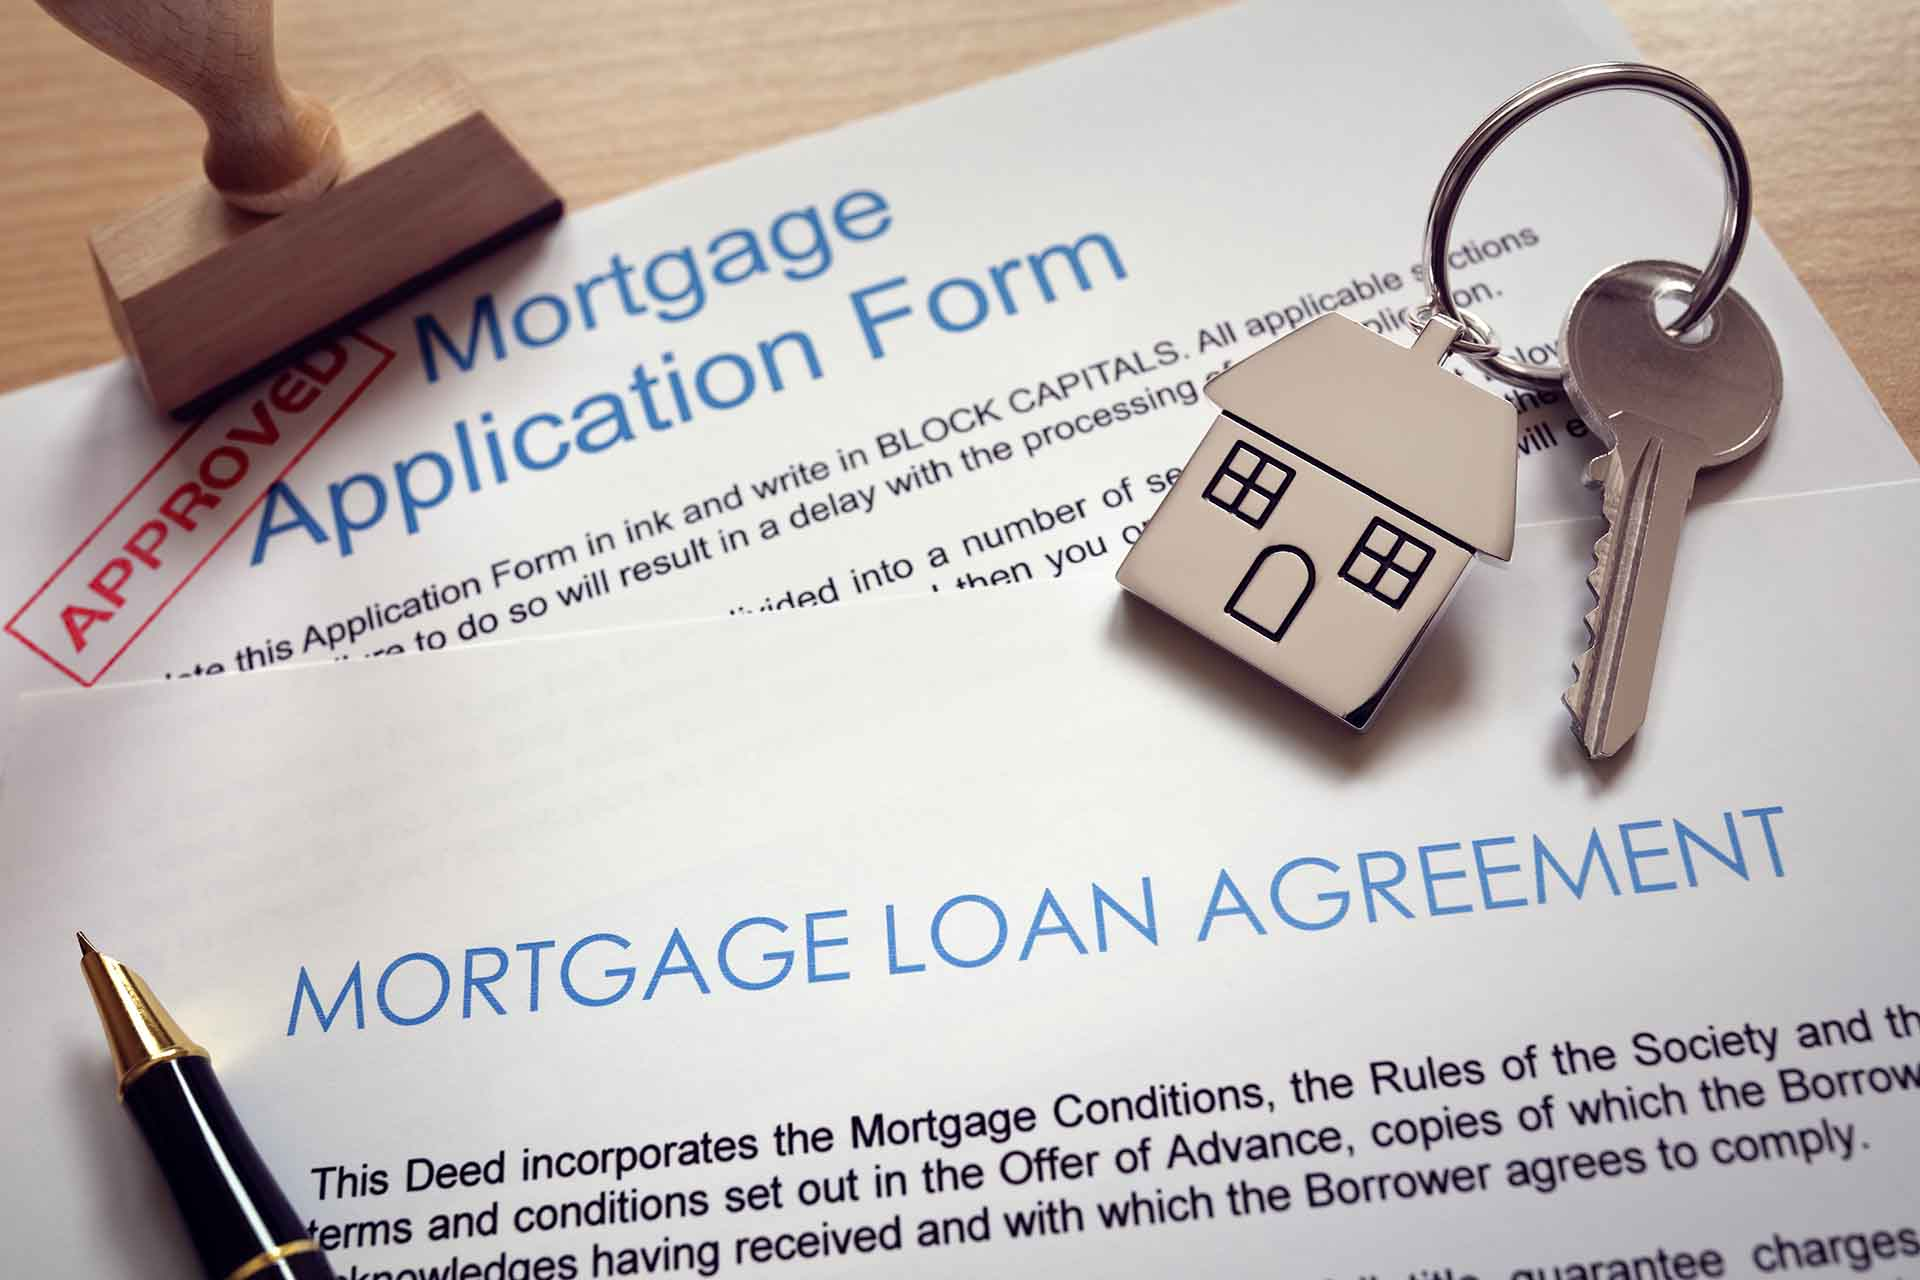 How does credit card debt affect a mortgage application?